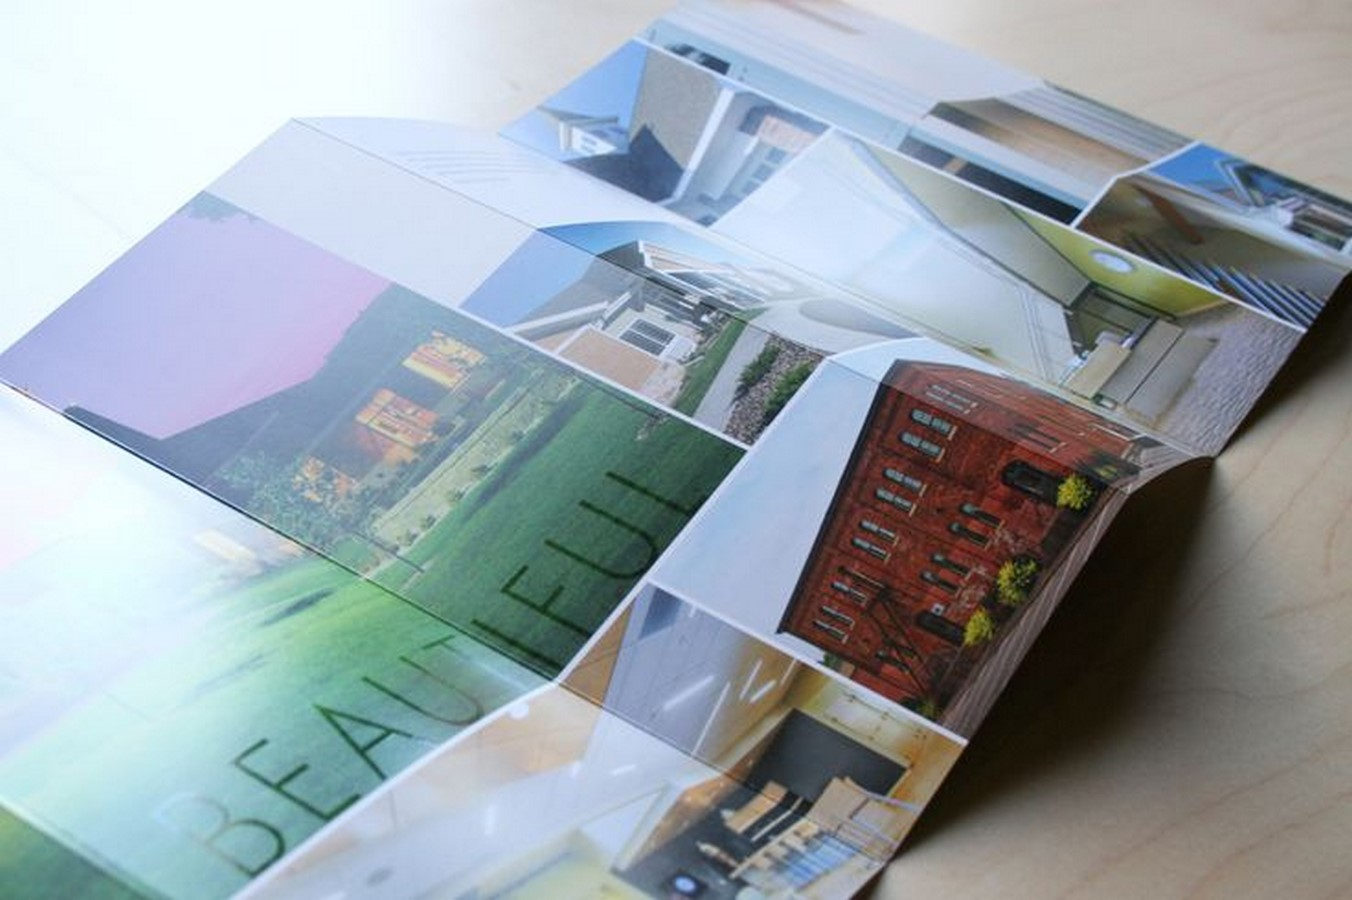 10 Architectural Firm Brochure every student must see - Sheet1